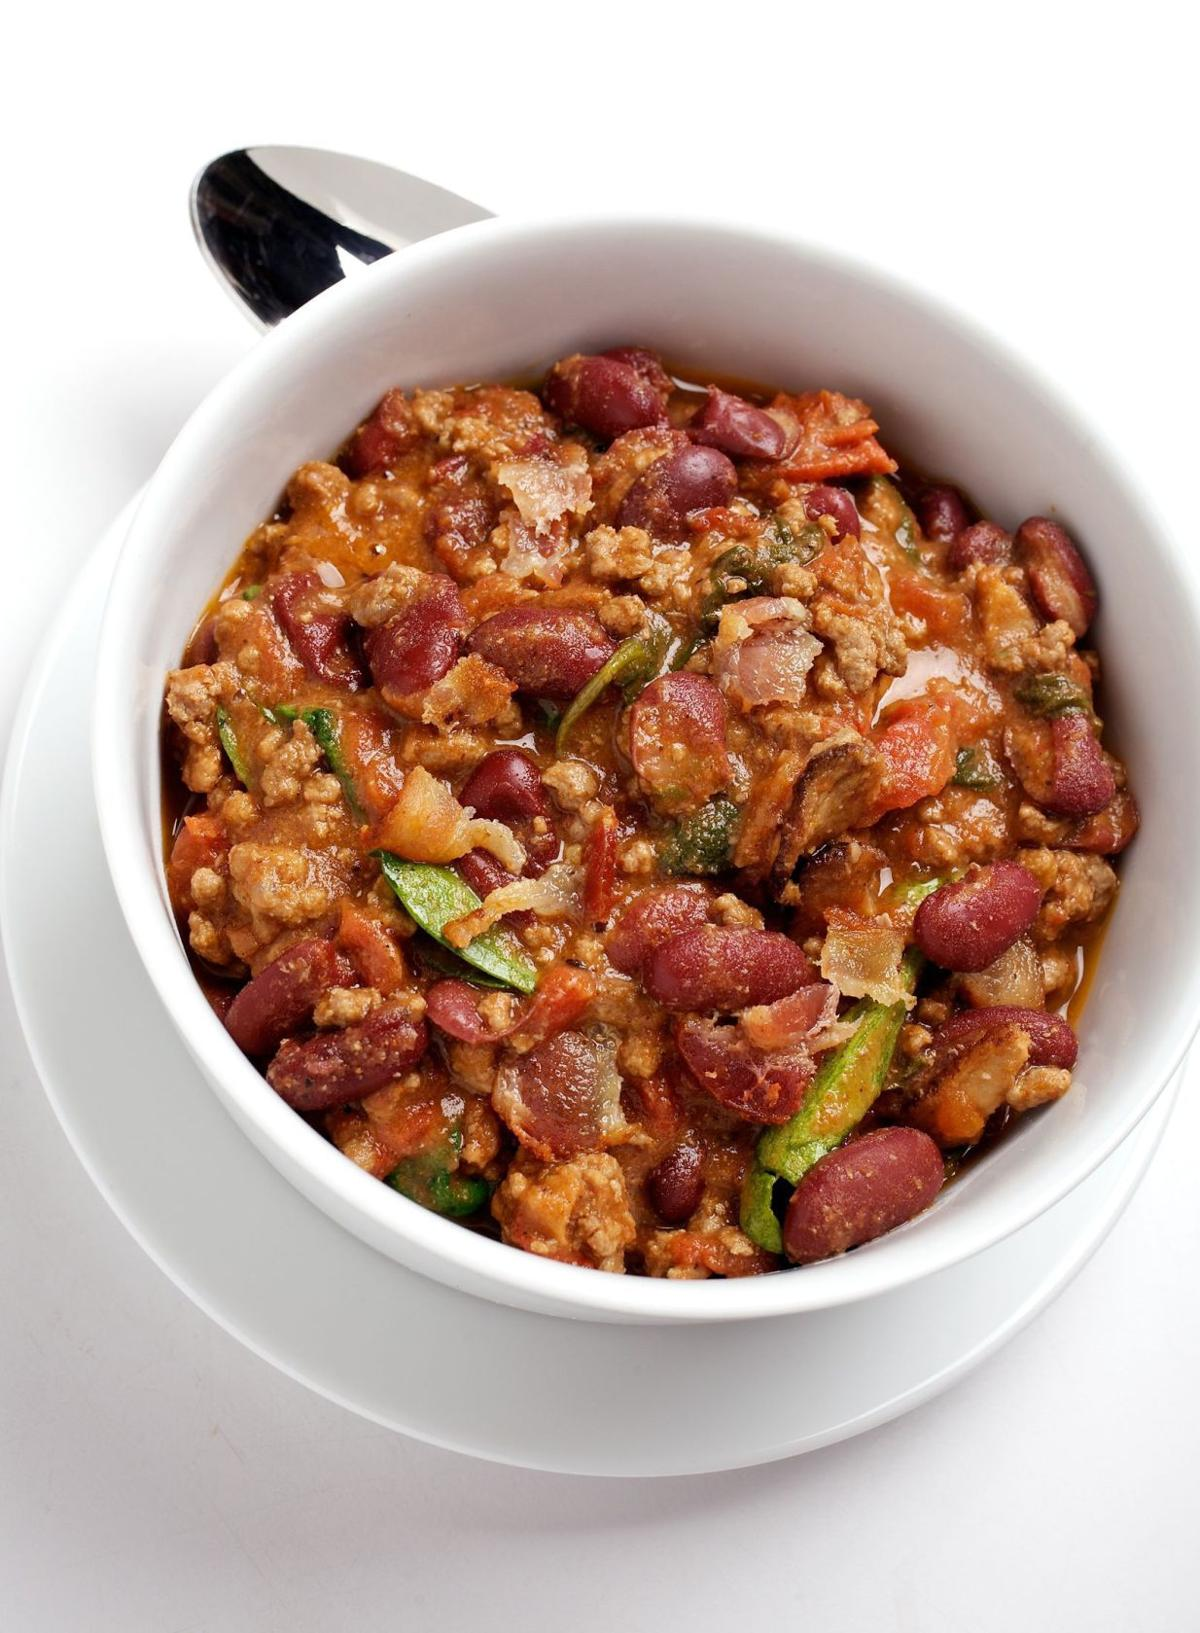 Dinner in 35 Minutes: Spinach and Bacon Chili